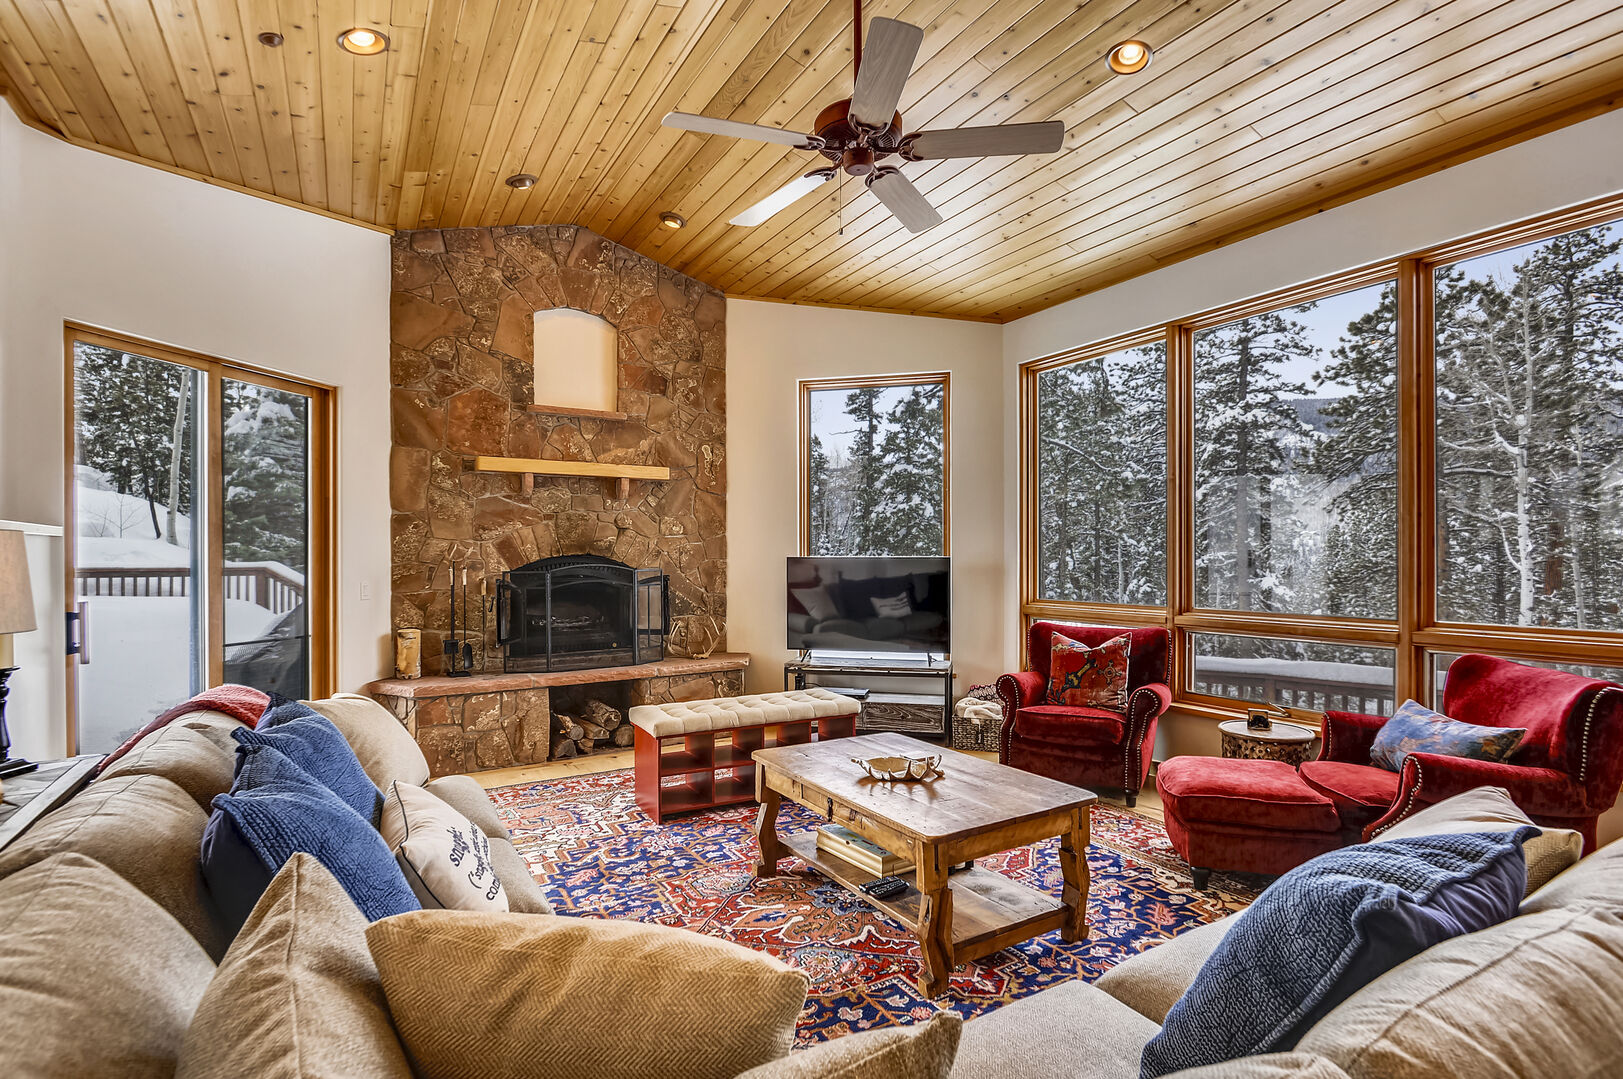 Wood burning fireplace to keep you cozy and a Large screen TV with plenty of seating